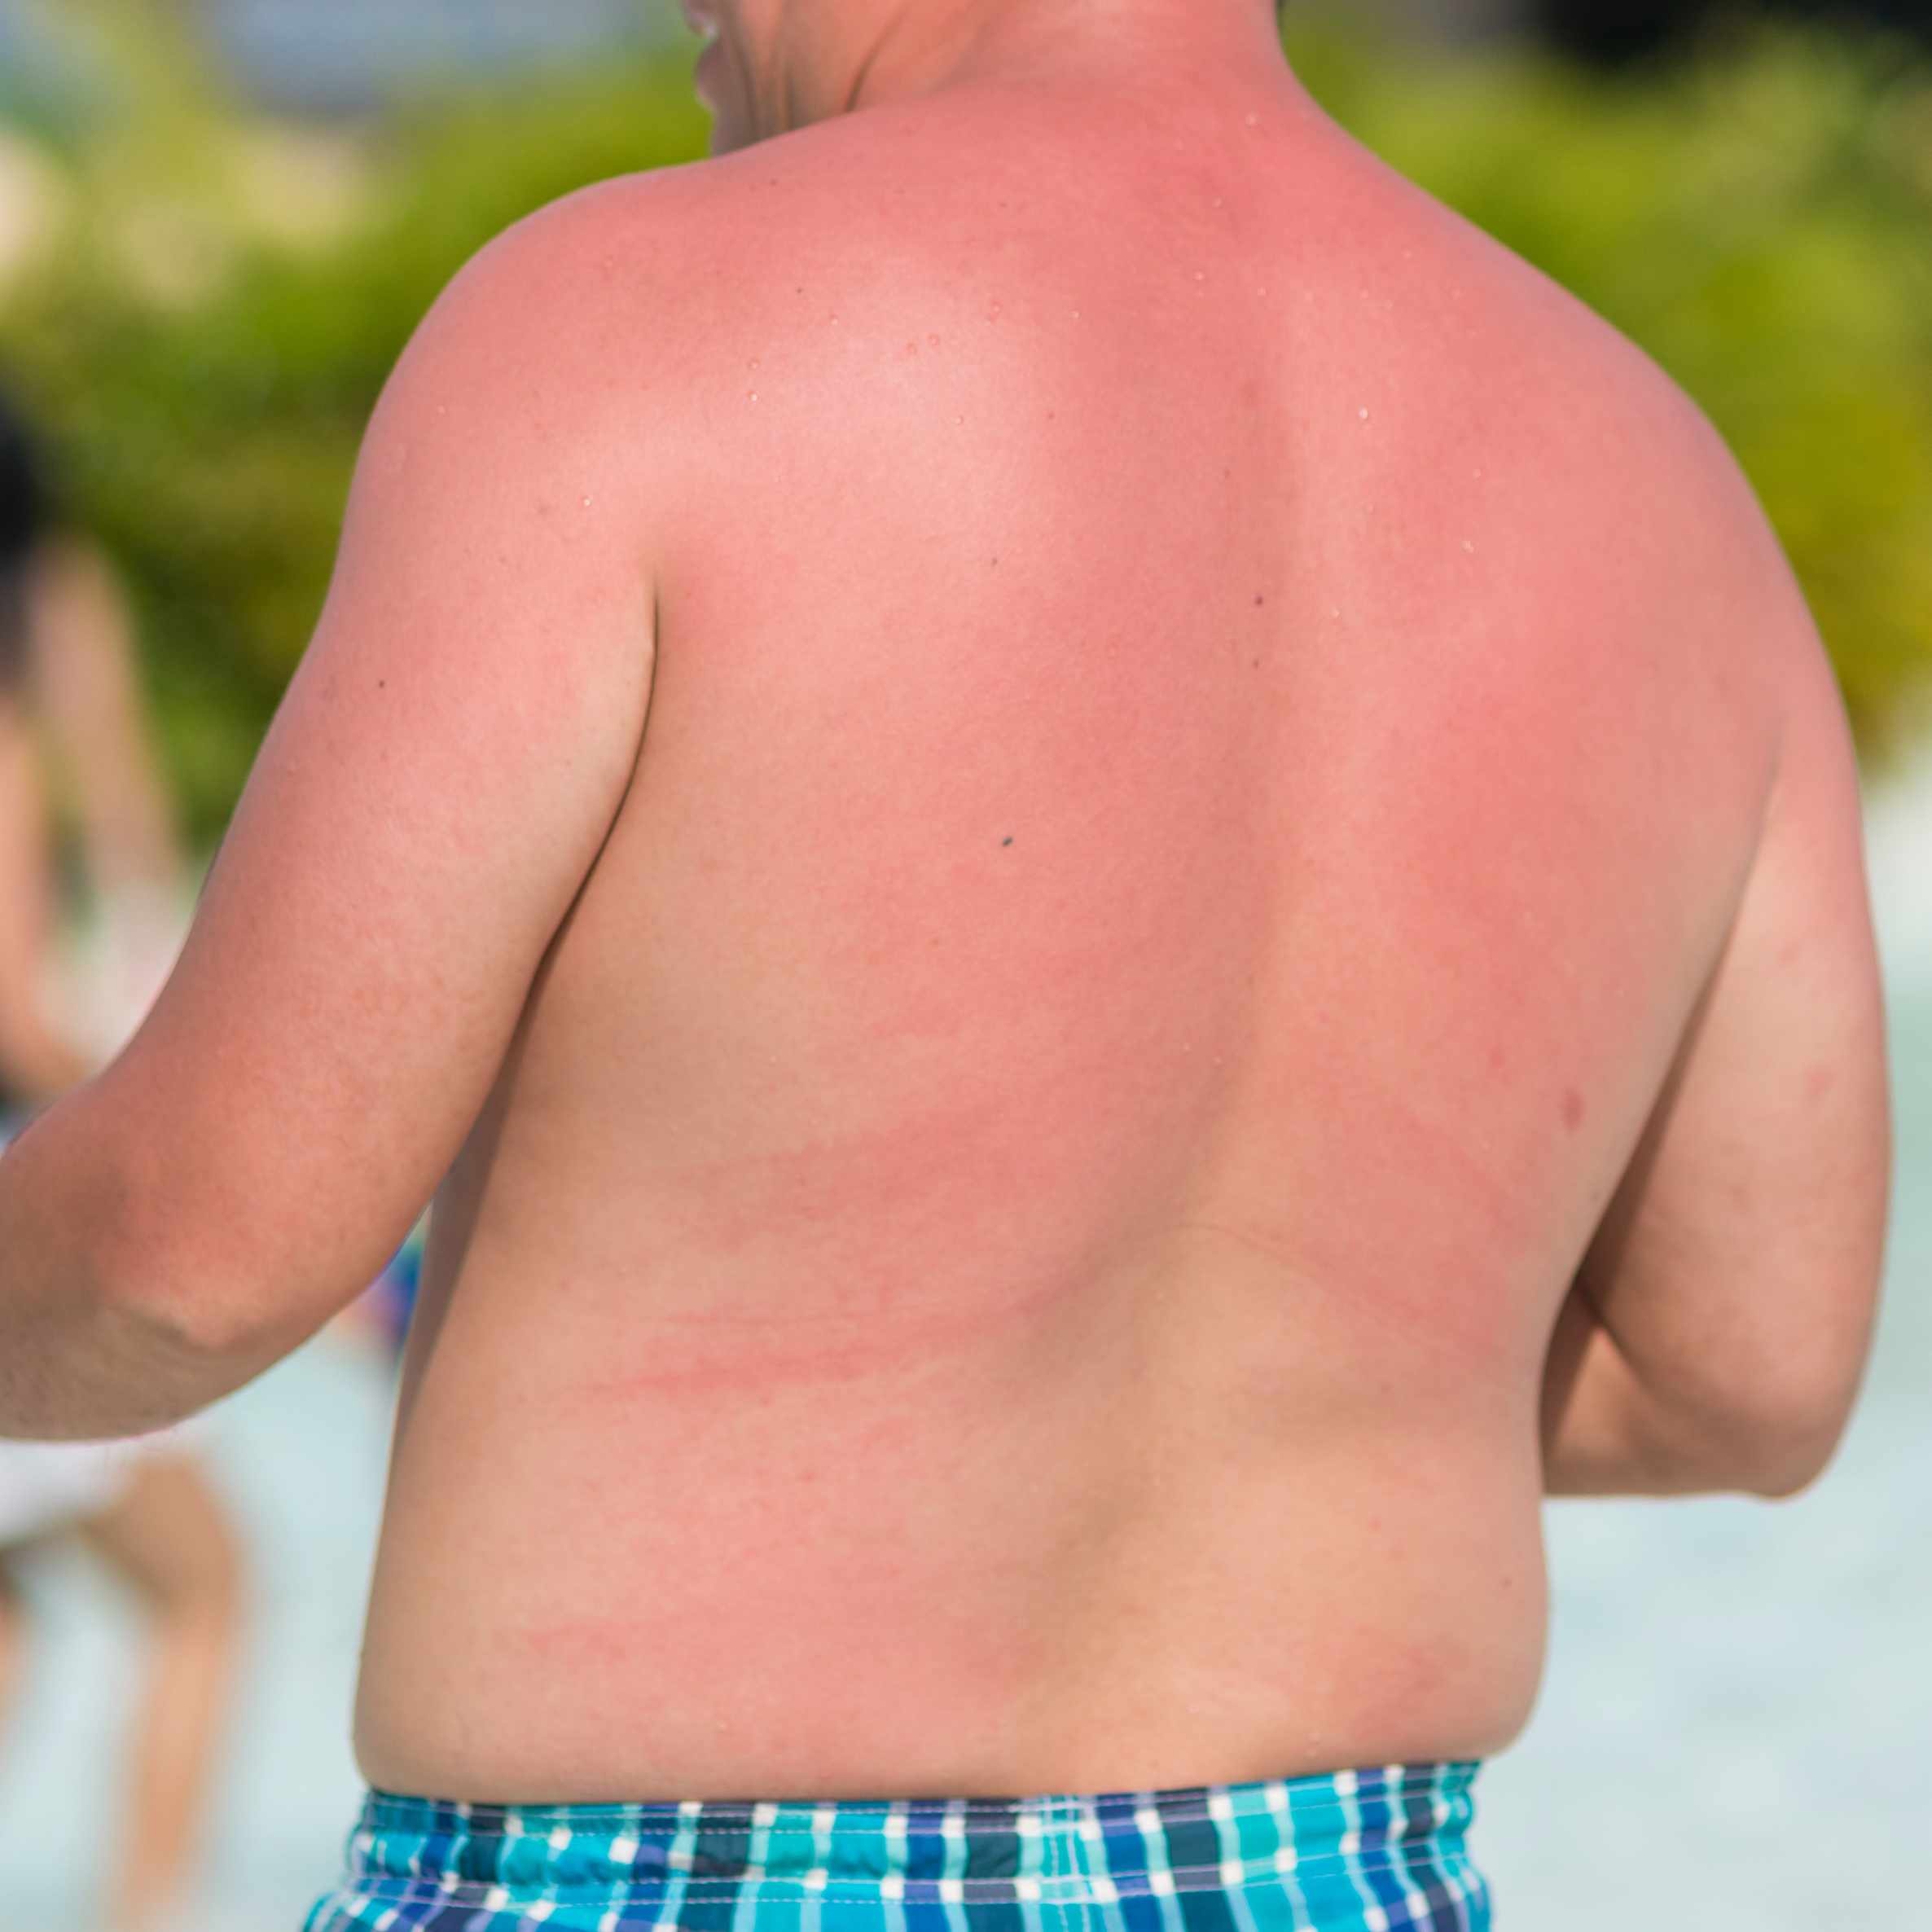 a man on the beach in a bathing suit with a bare sunburned back